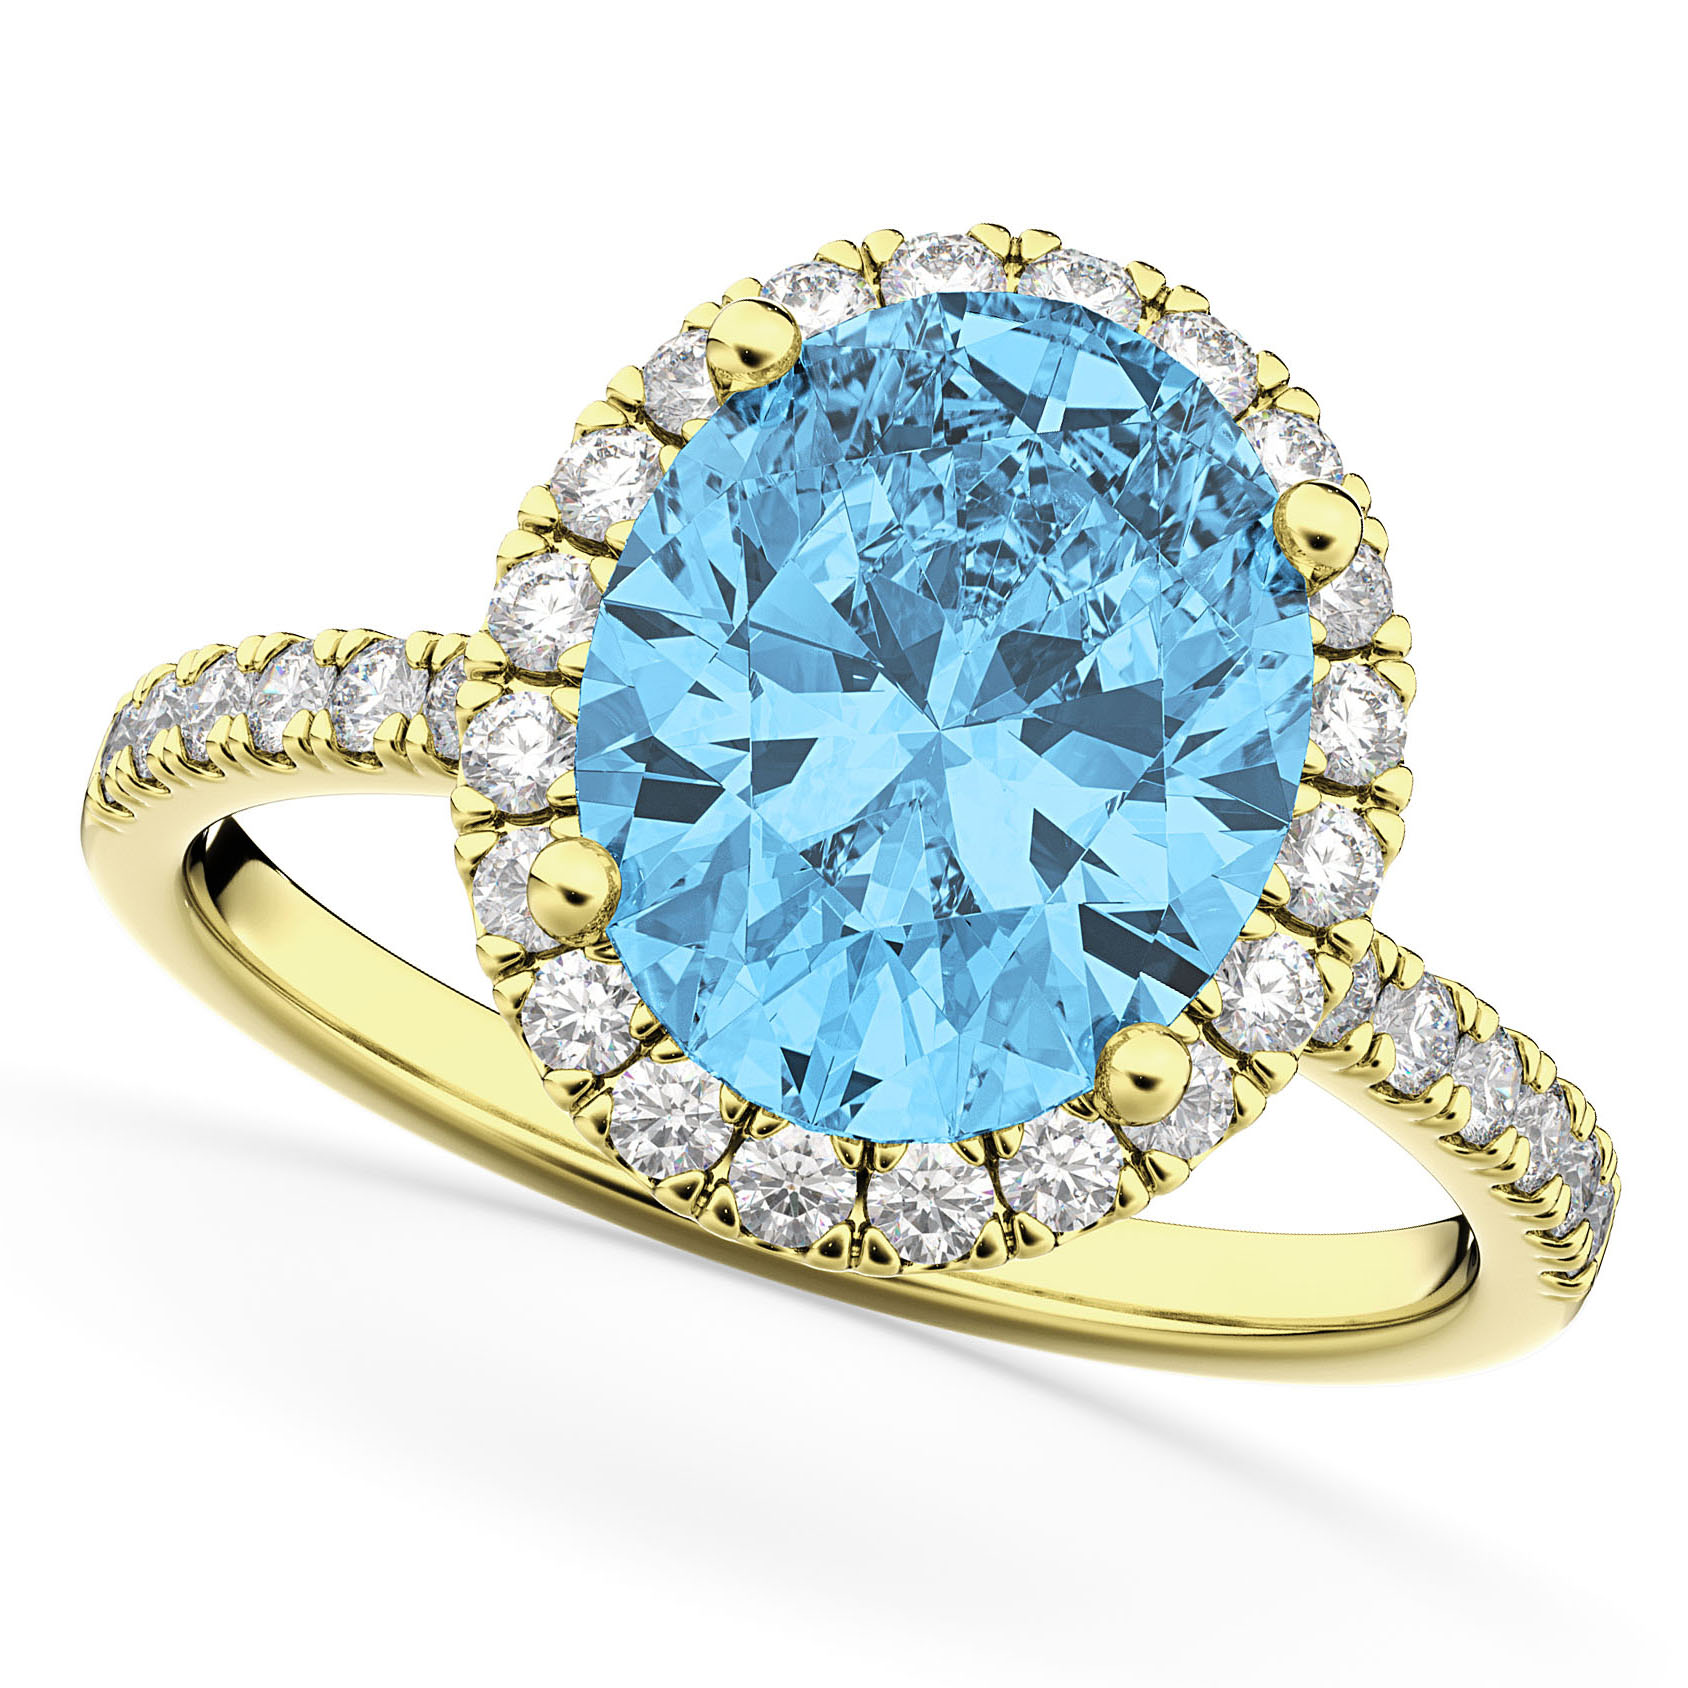 Oval Cut Halo Blue Topaz & Diamond Engagement Ring 14K Yellow Gold 4.01ct